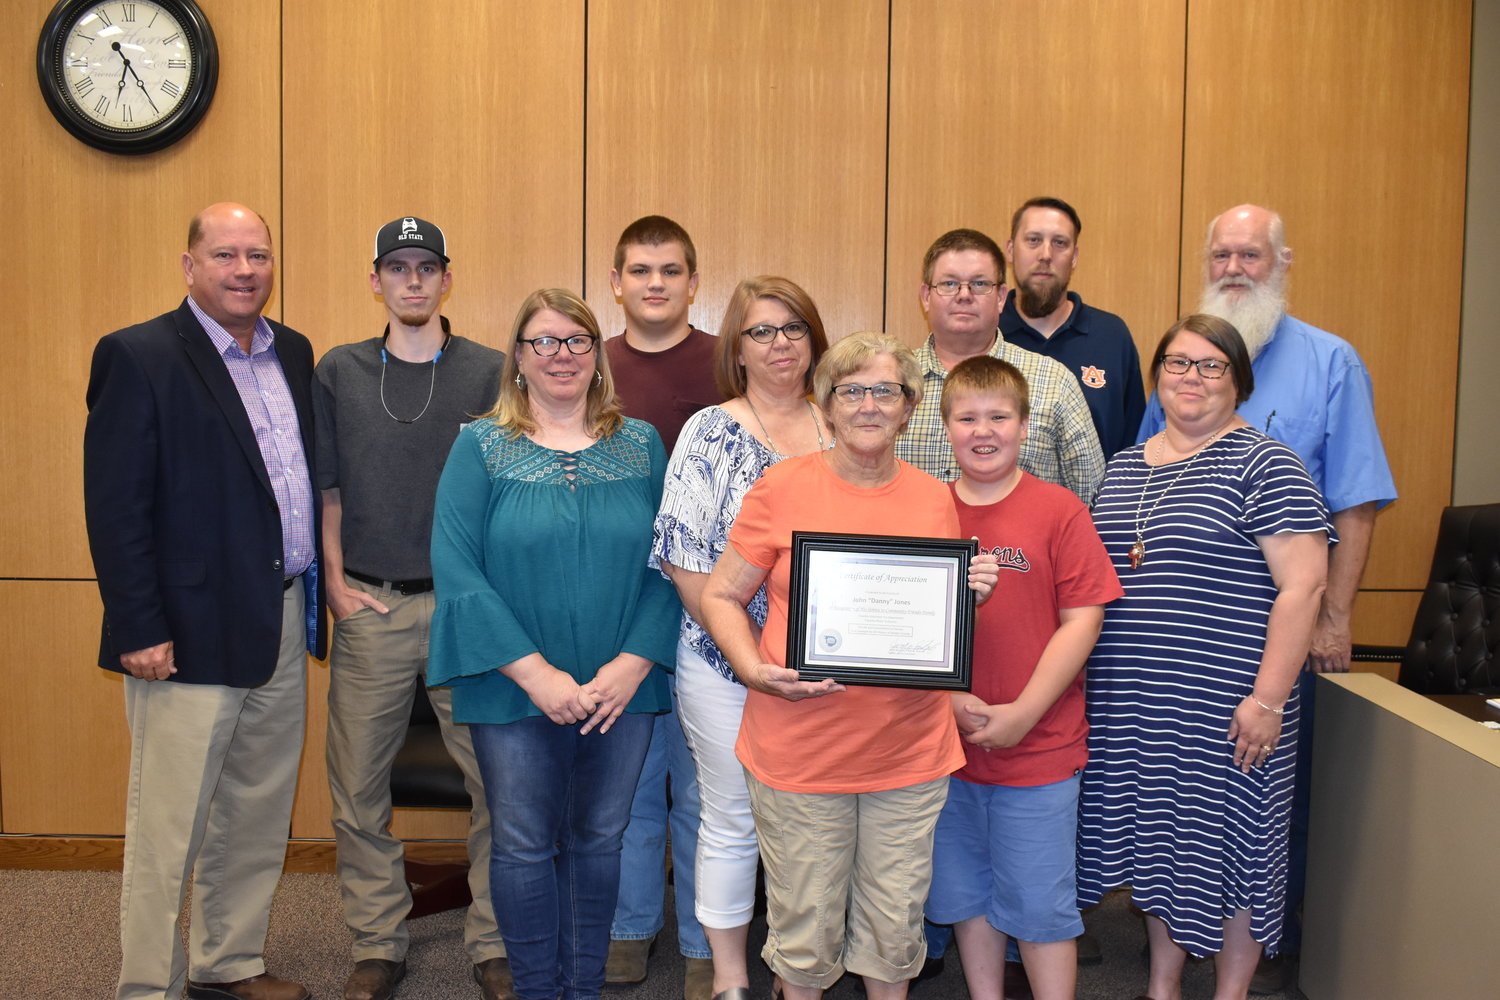 District 2 Walker County Commissioner Jeff Burrough, far left, presents a certificate of appreciation to the family of the late Danny Jones at Monday night's commission meeting. The award was given to honor Jones' community service to the Townley area.